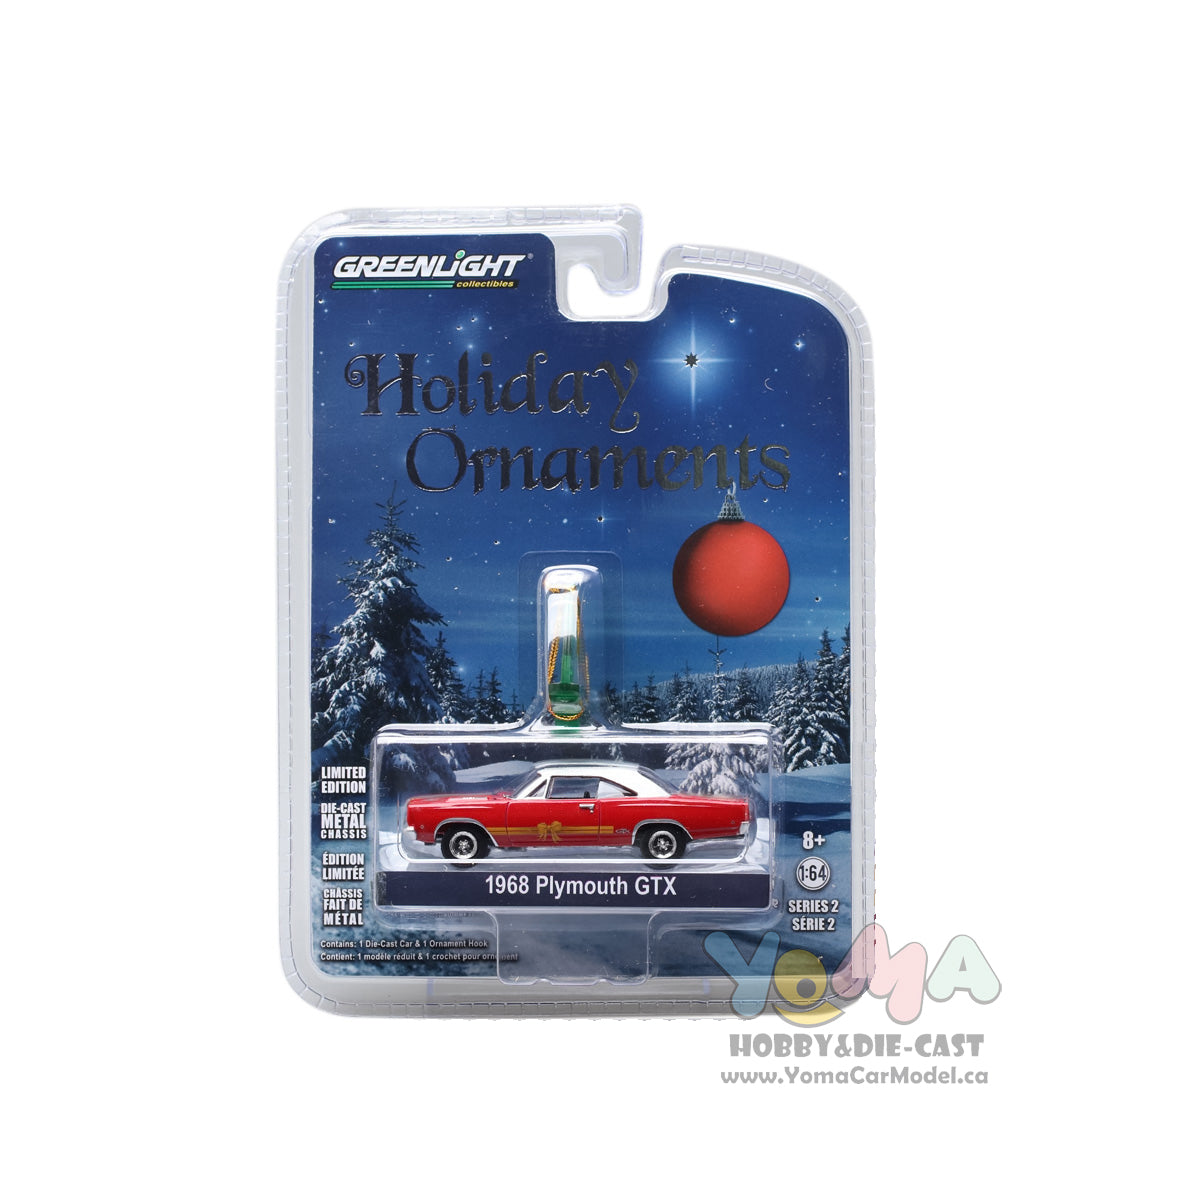 GreenLight 1/64 GreenLight Holiday Ornaments Series 2 - 1968 PLYMOUTH GTX RED 37120-C